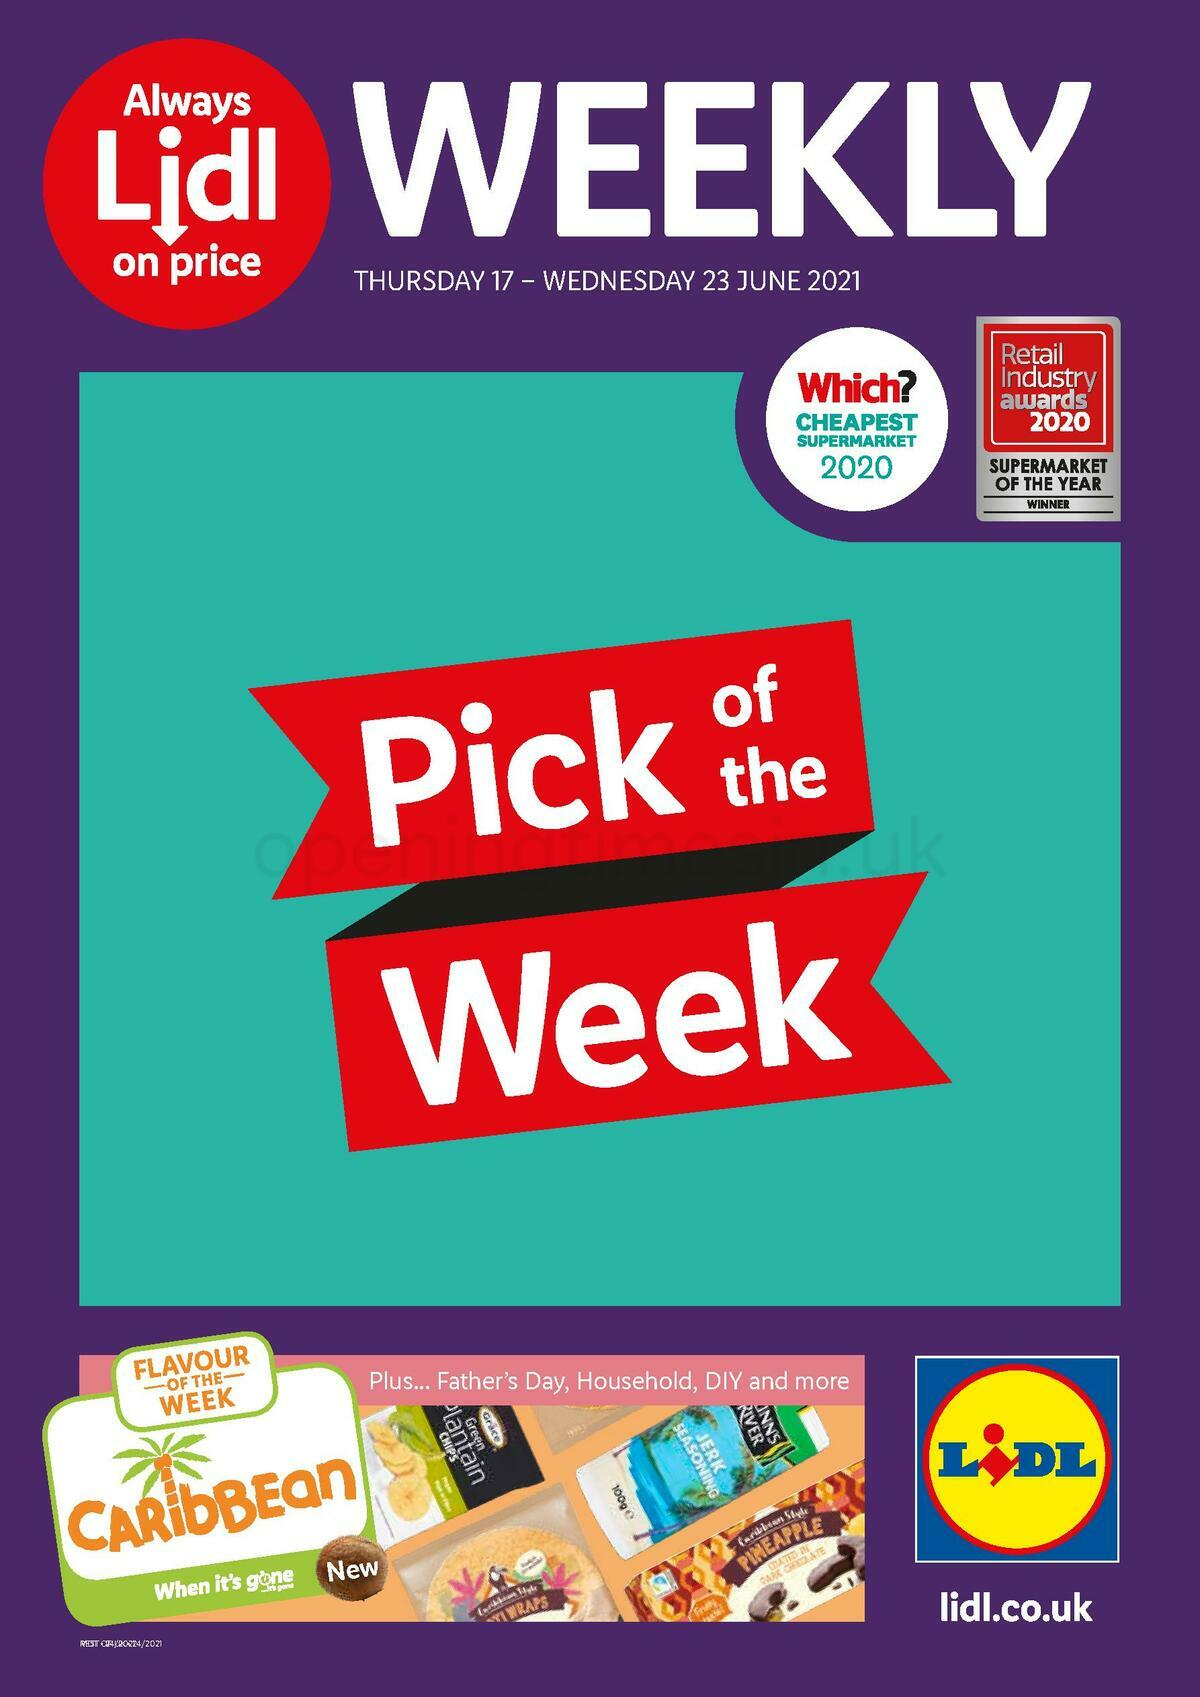 LIDL Offers from June 17